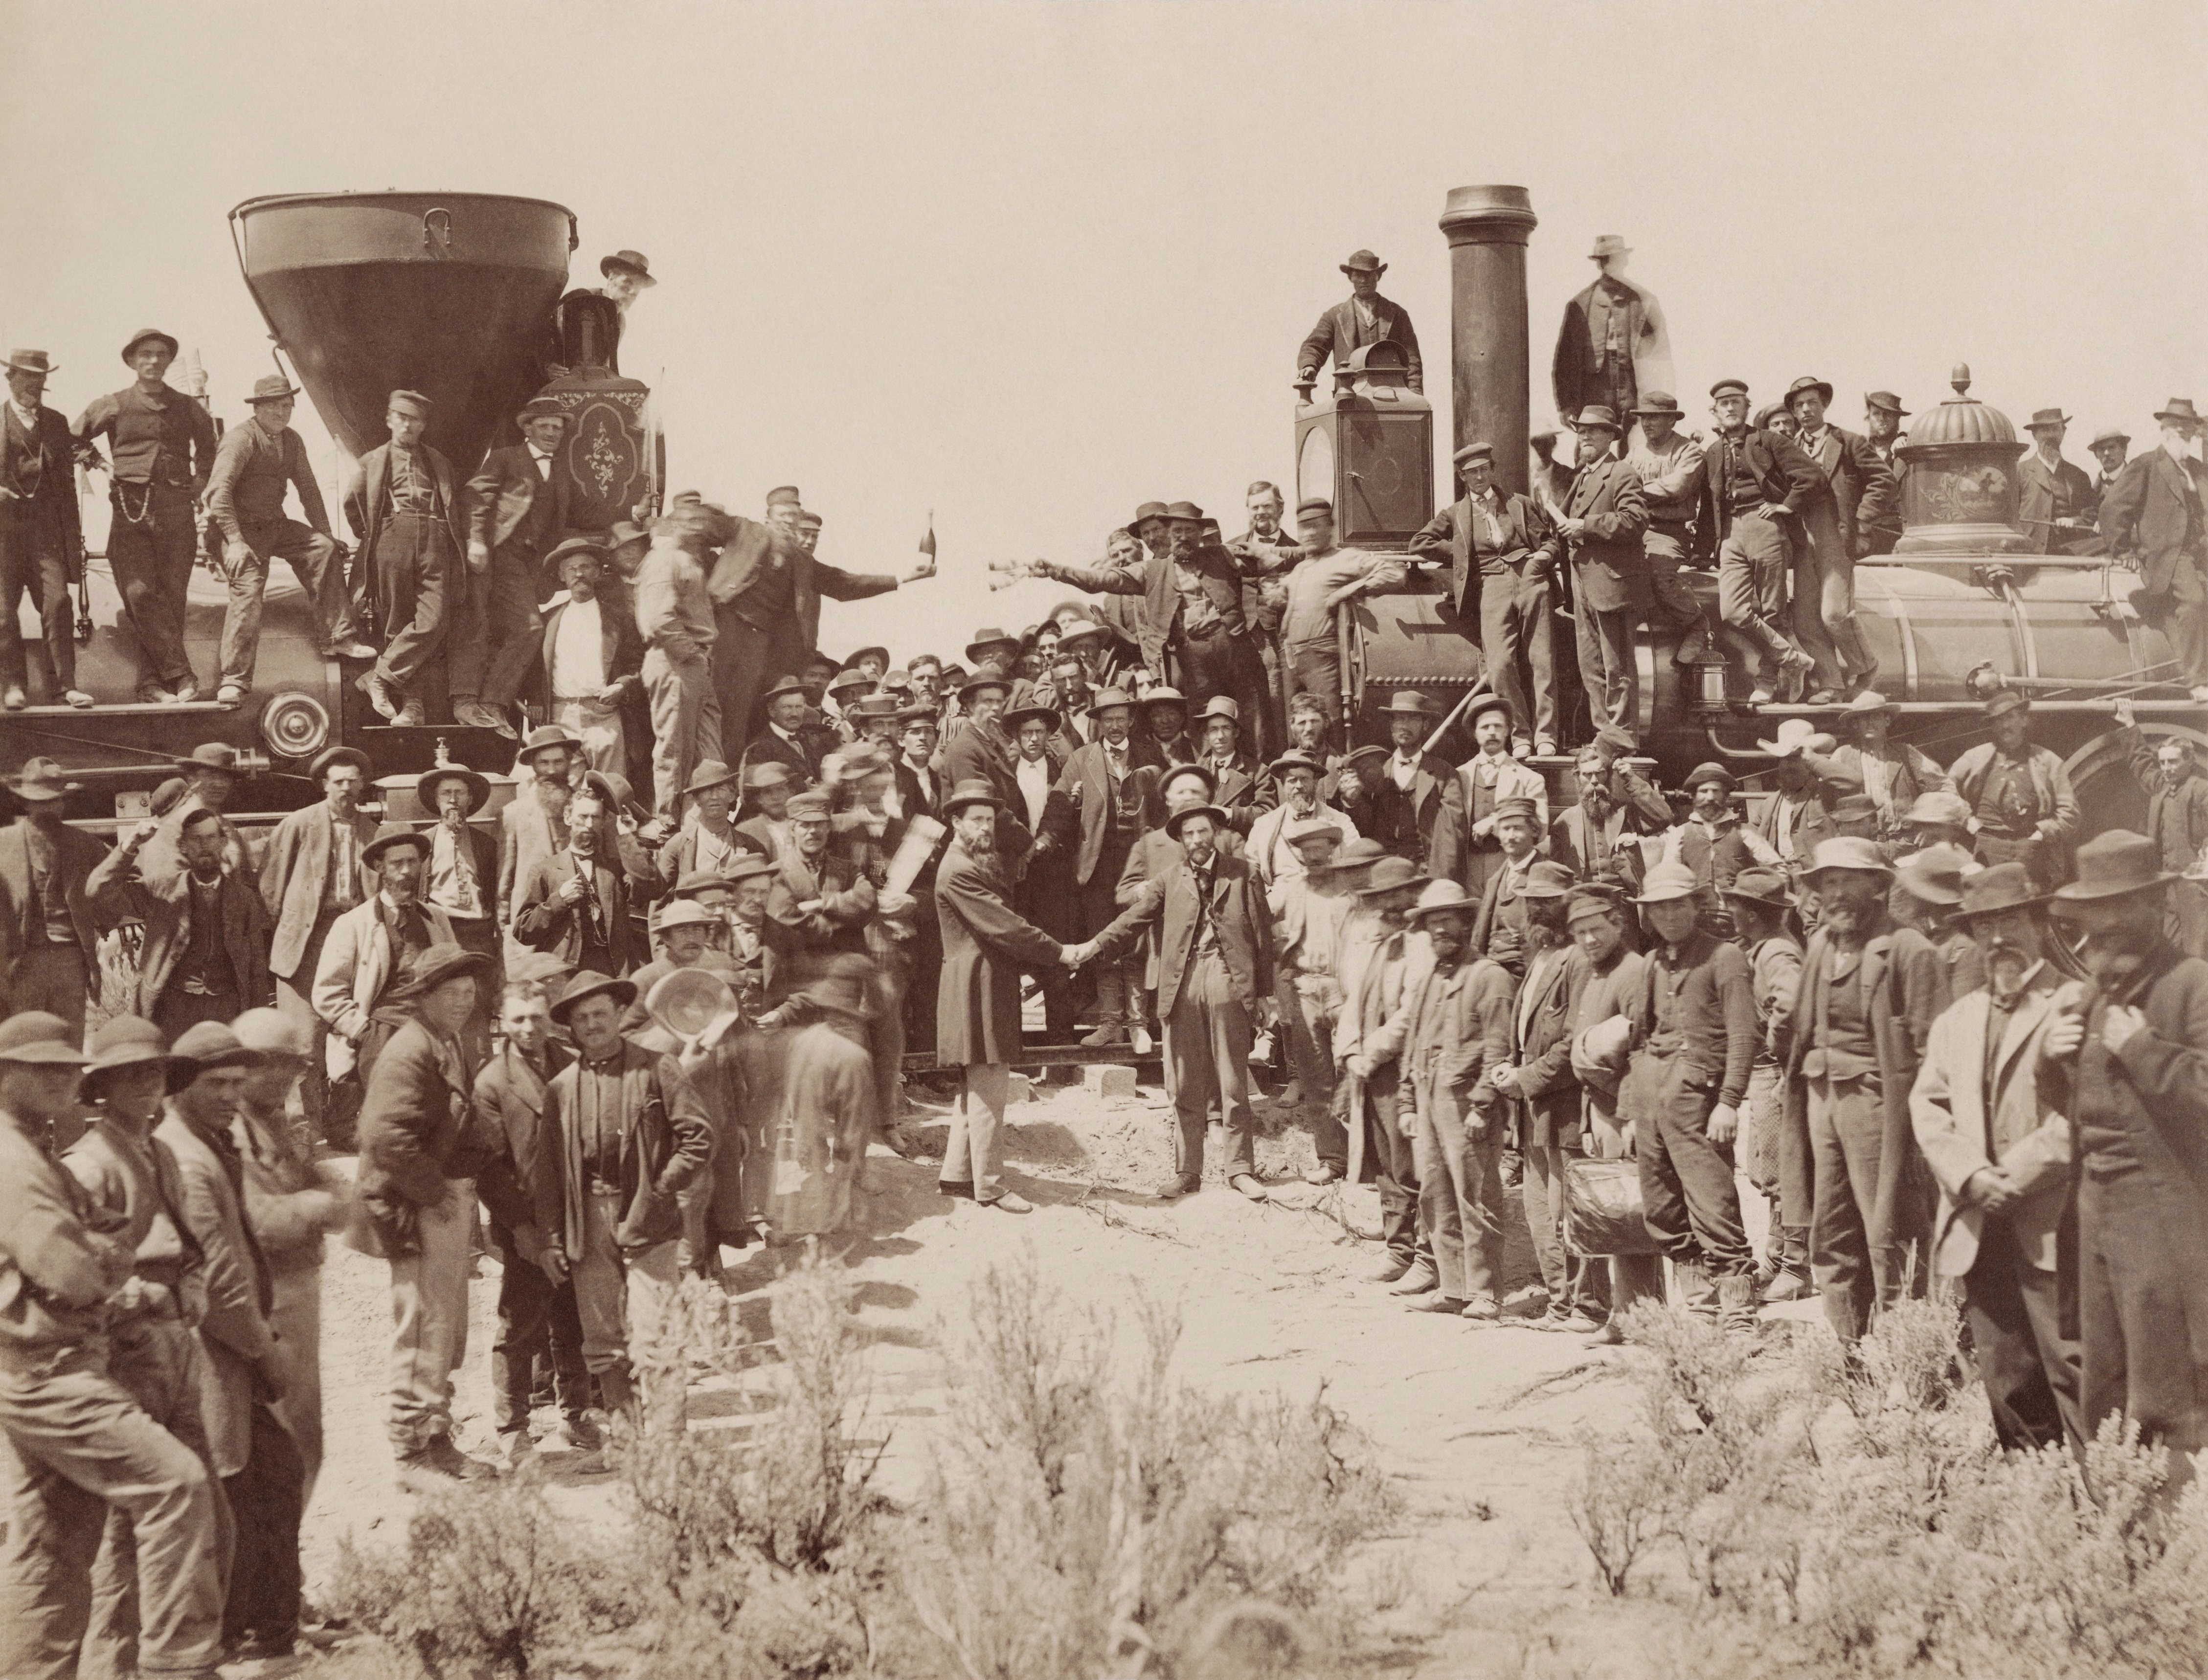 The ceremony for the driving of the golden spike at Promontory Summit, Utah on May 10, 1869; completion of the First Transcontinental Railroad